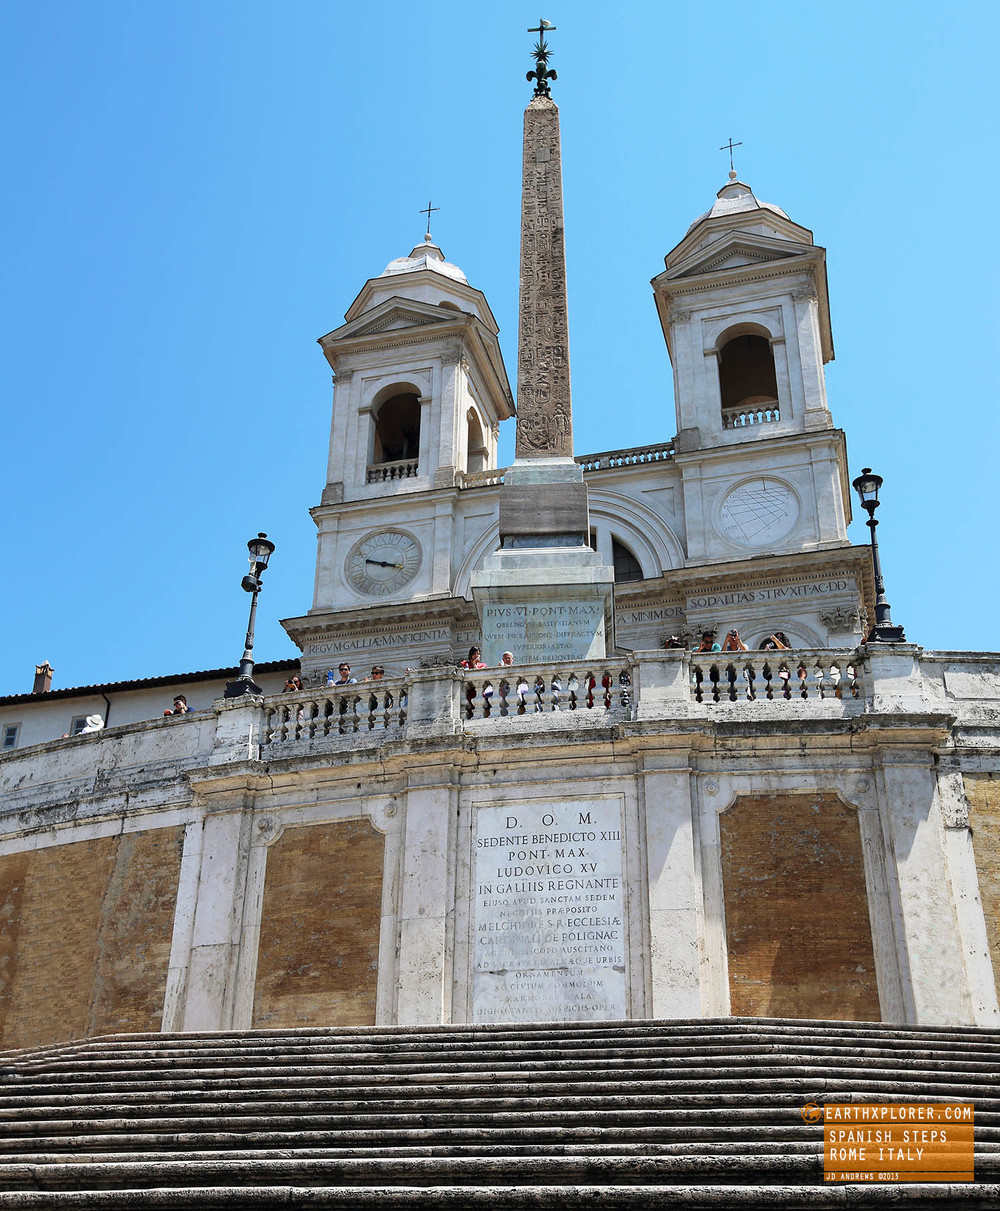 The Spanish steps were built in 1723-1725